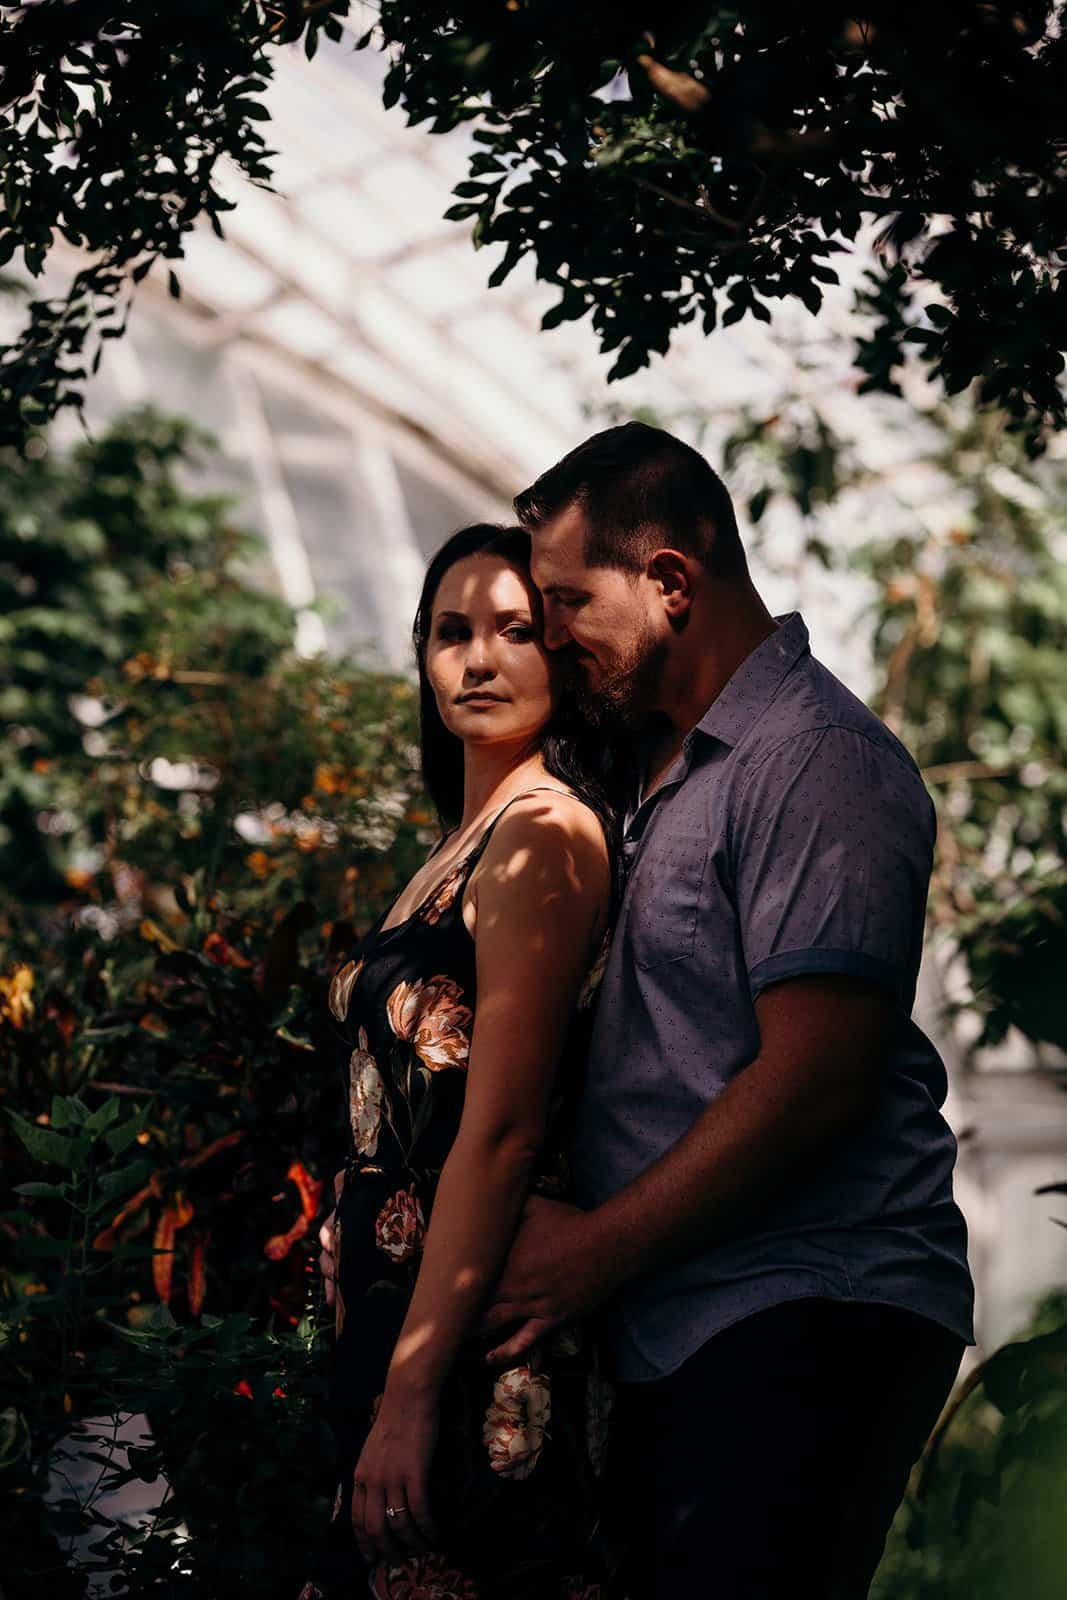 couple embrace in dappled light of greenhouse at Phipps Conservatory